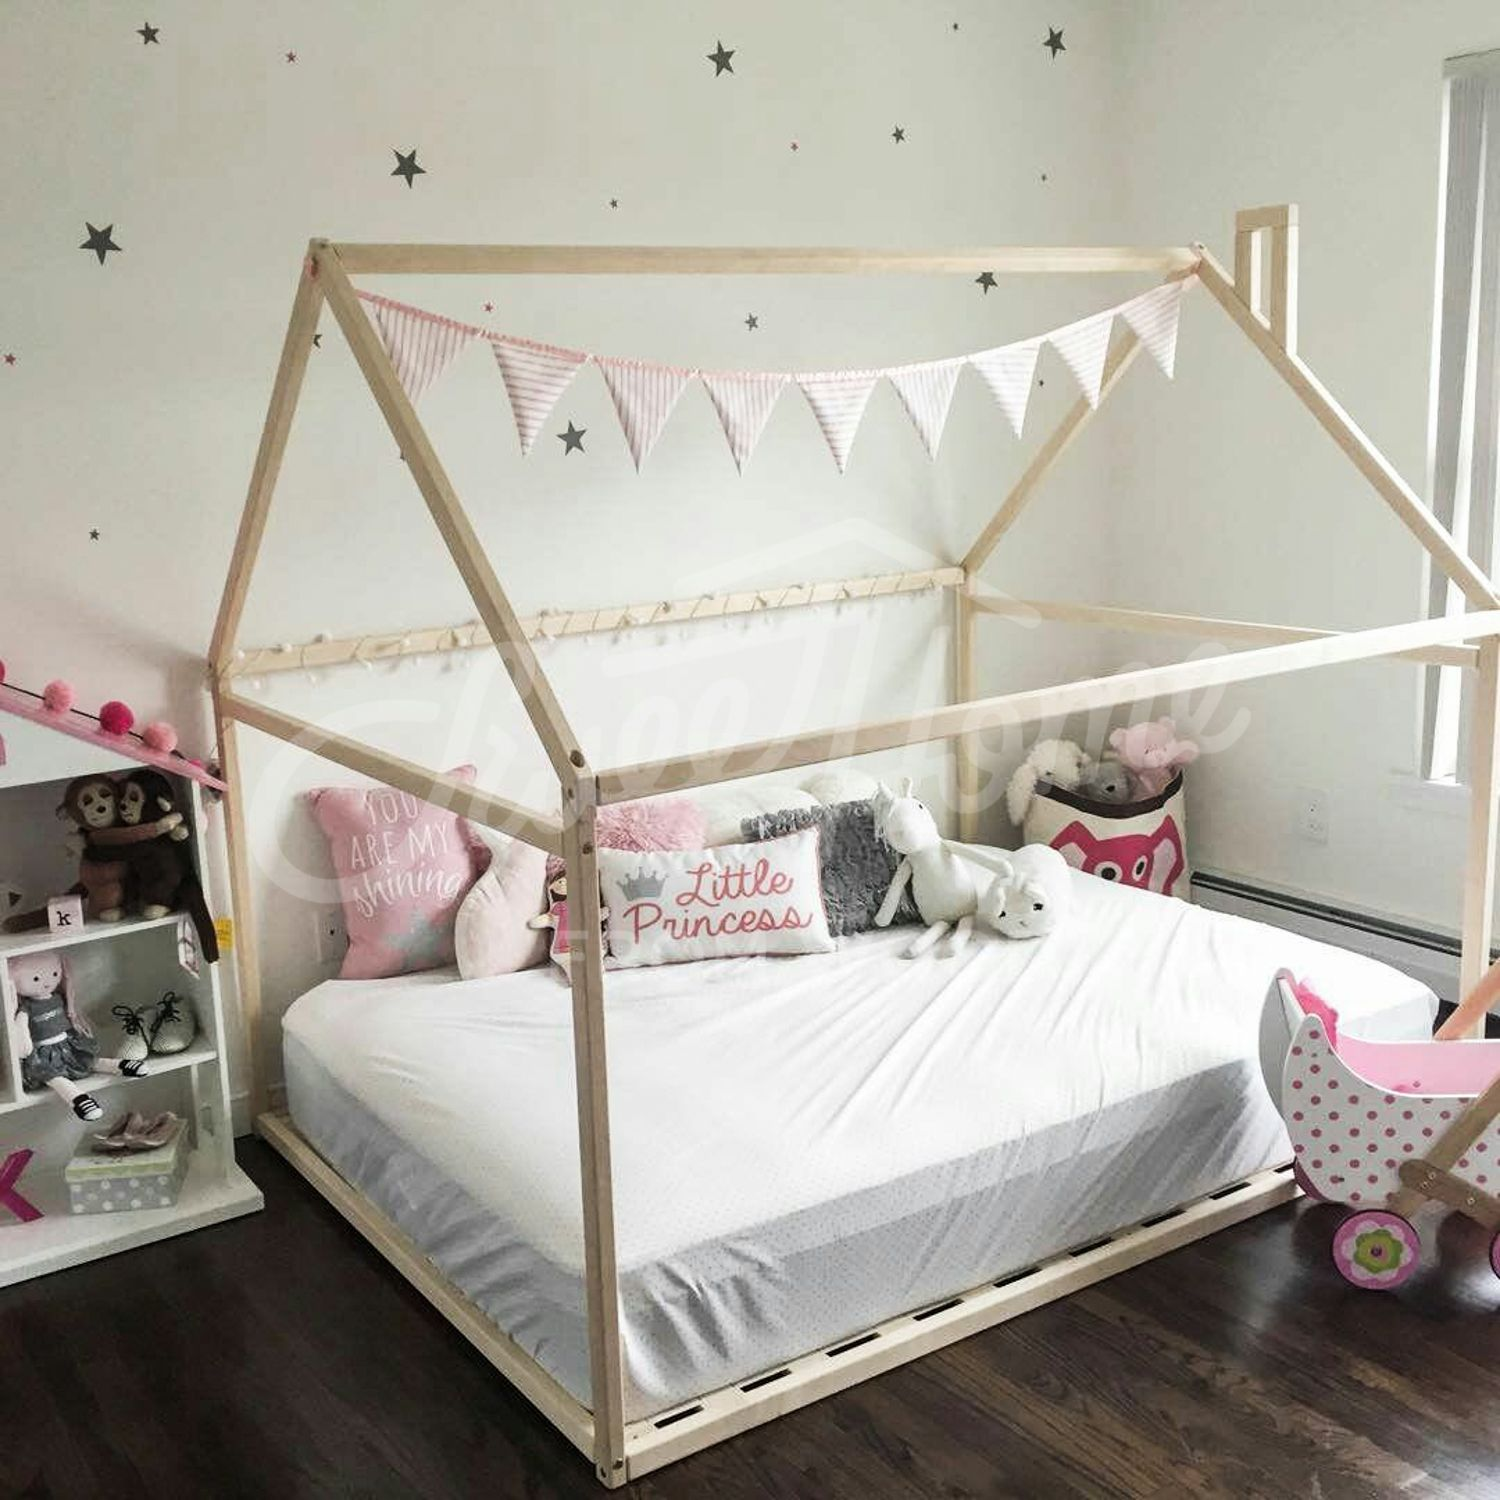 Wood Bed Full Double Toddler Bed Frame Tent Bed Wooden Etsy House Frame Bed Toddler Bed Frame Bed Tent